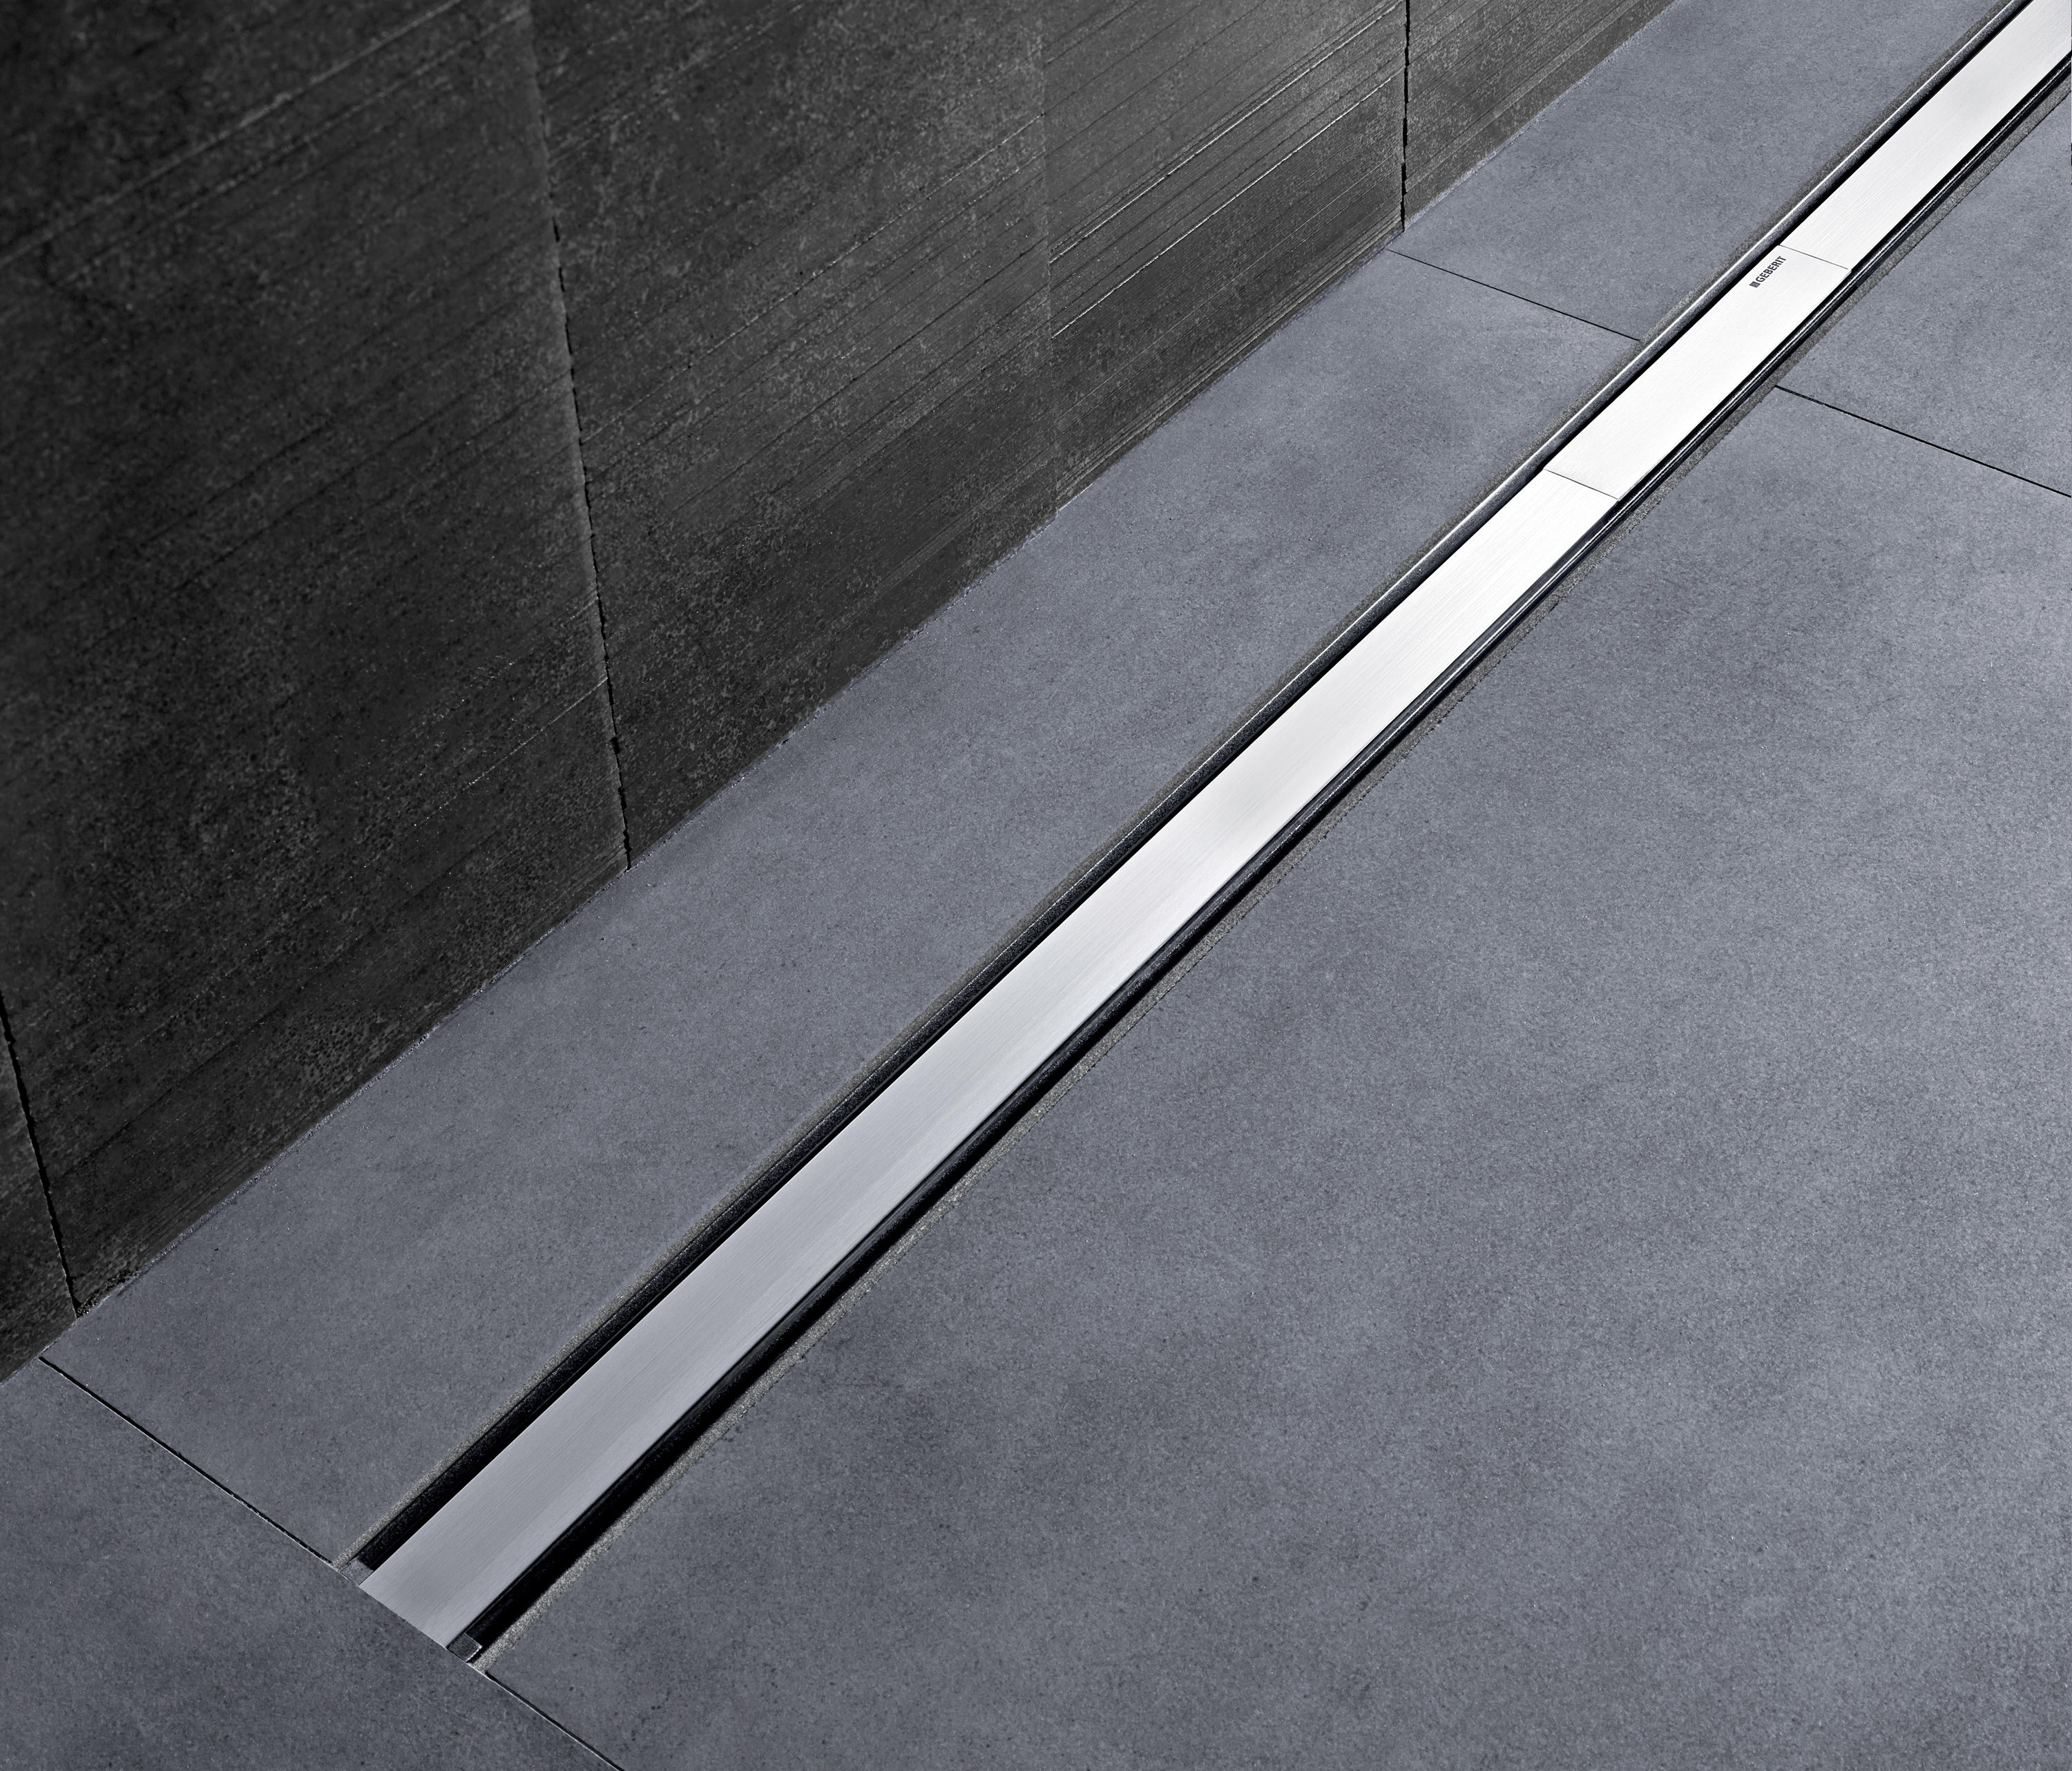 Geberit shower channels cleanline linear drains from Geberit drains